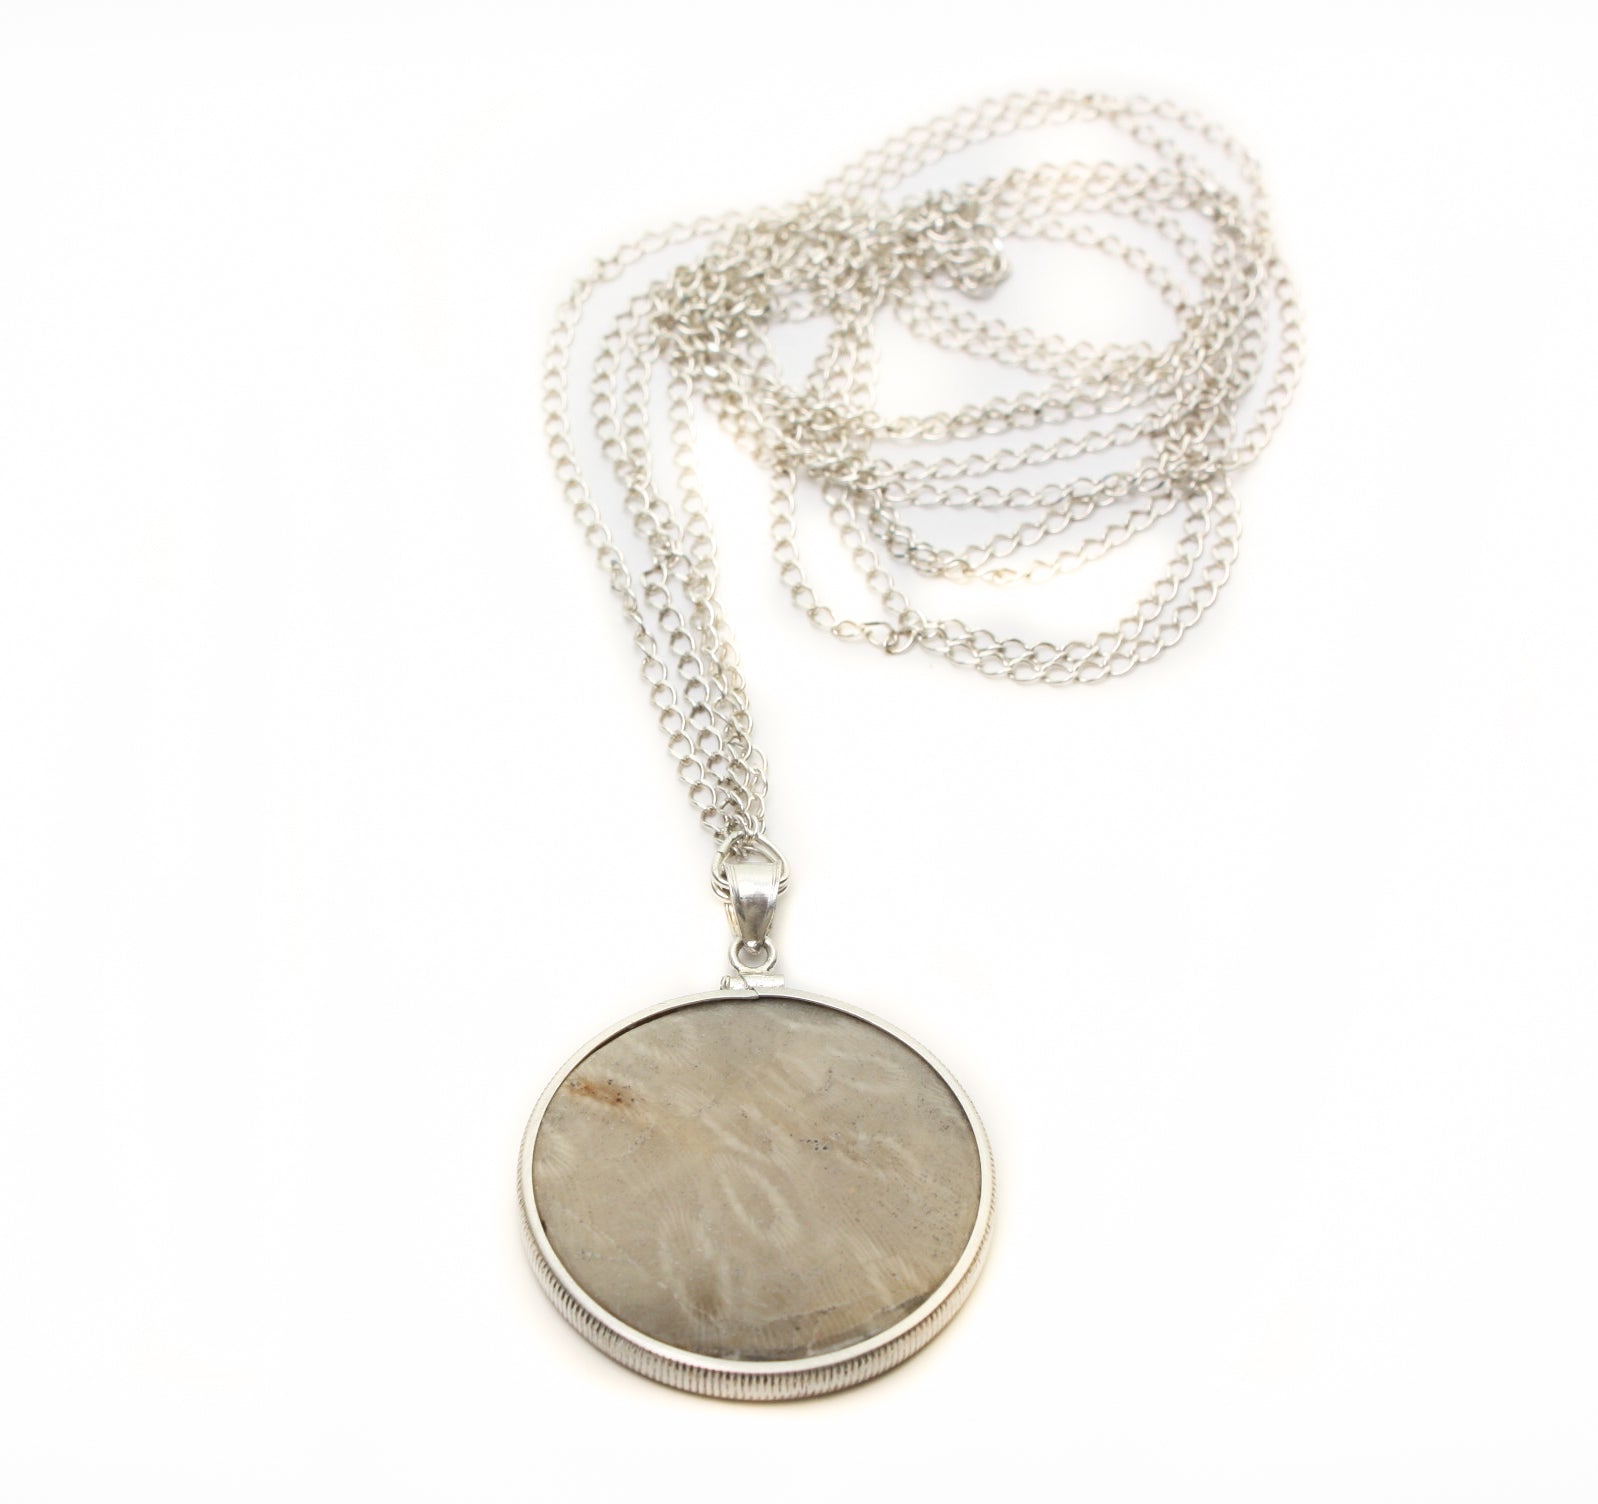 Arctic Raw - DEVONIAN FINGERPRINTS, One of a kind Reversible Ladies Necklace